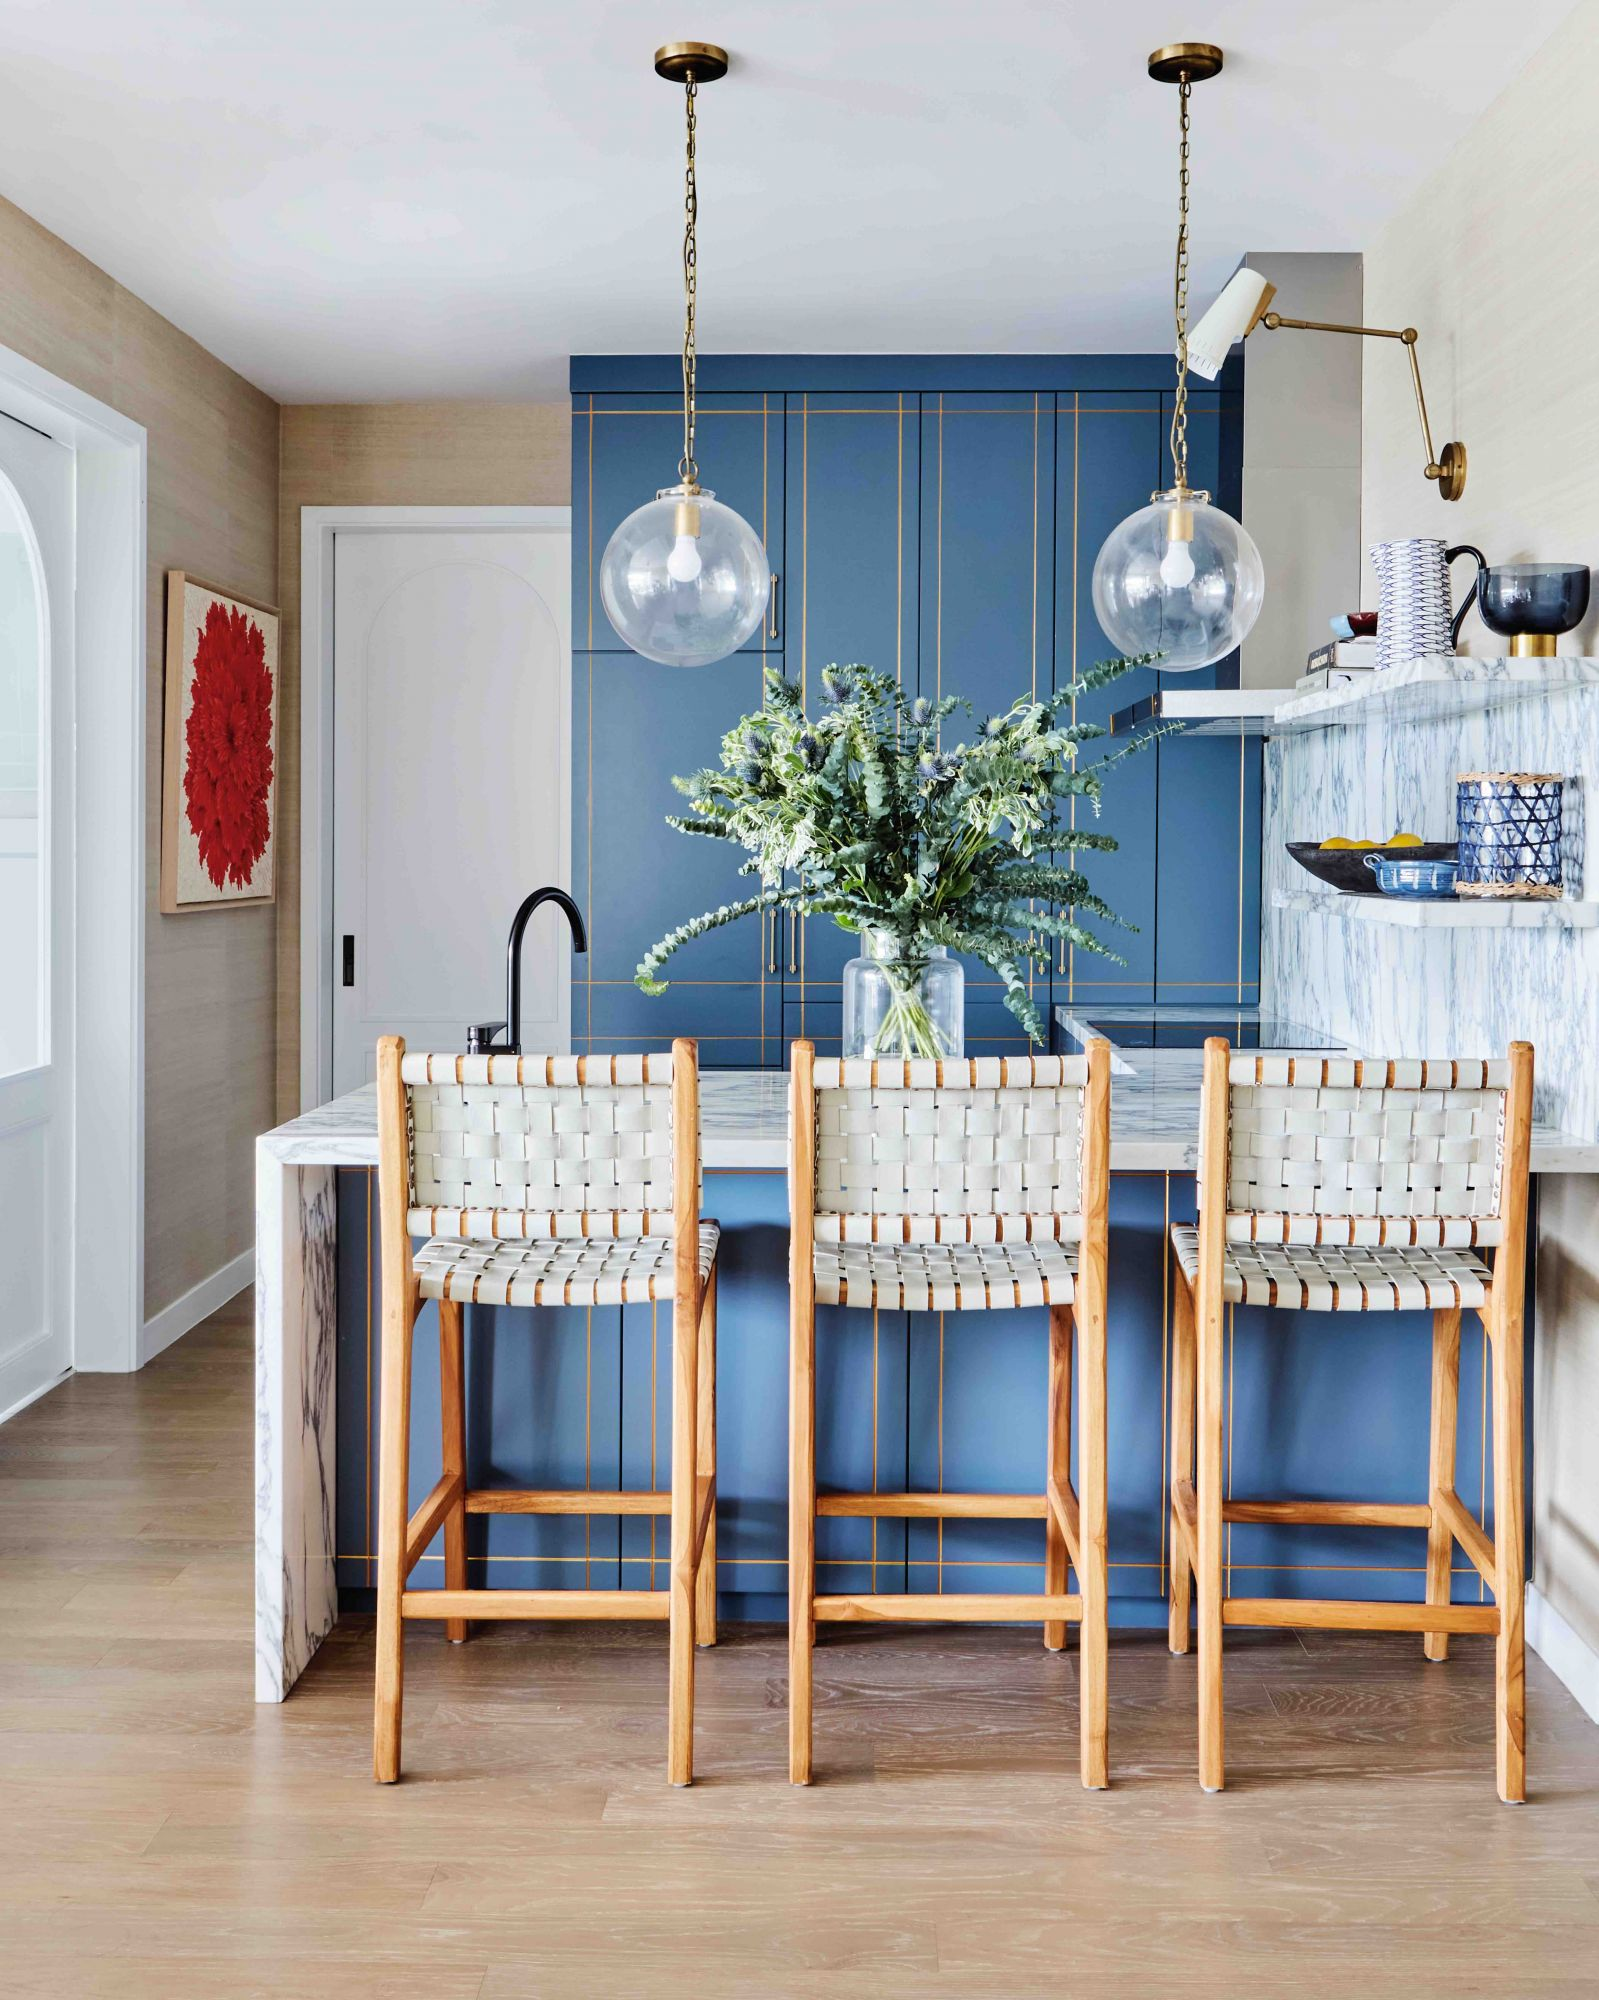 This kitchen designed by E&A Interiors combines light wood, white marble and blue cabinetry to create an elegant space